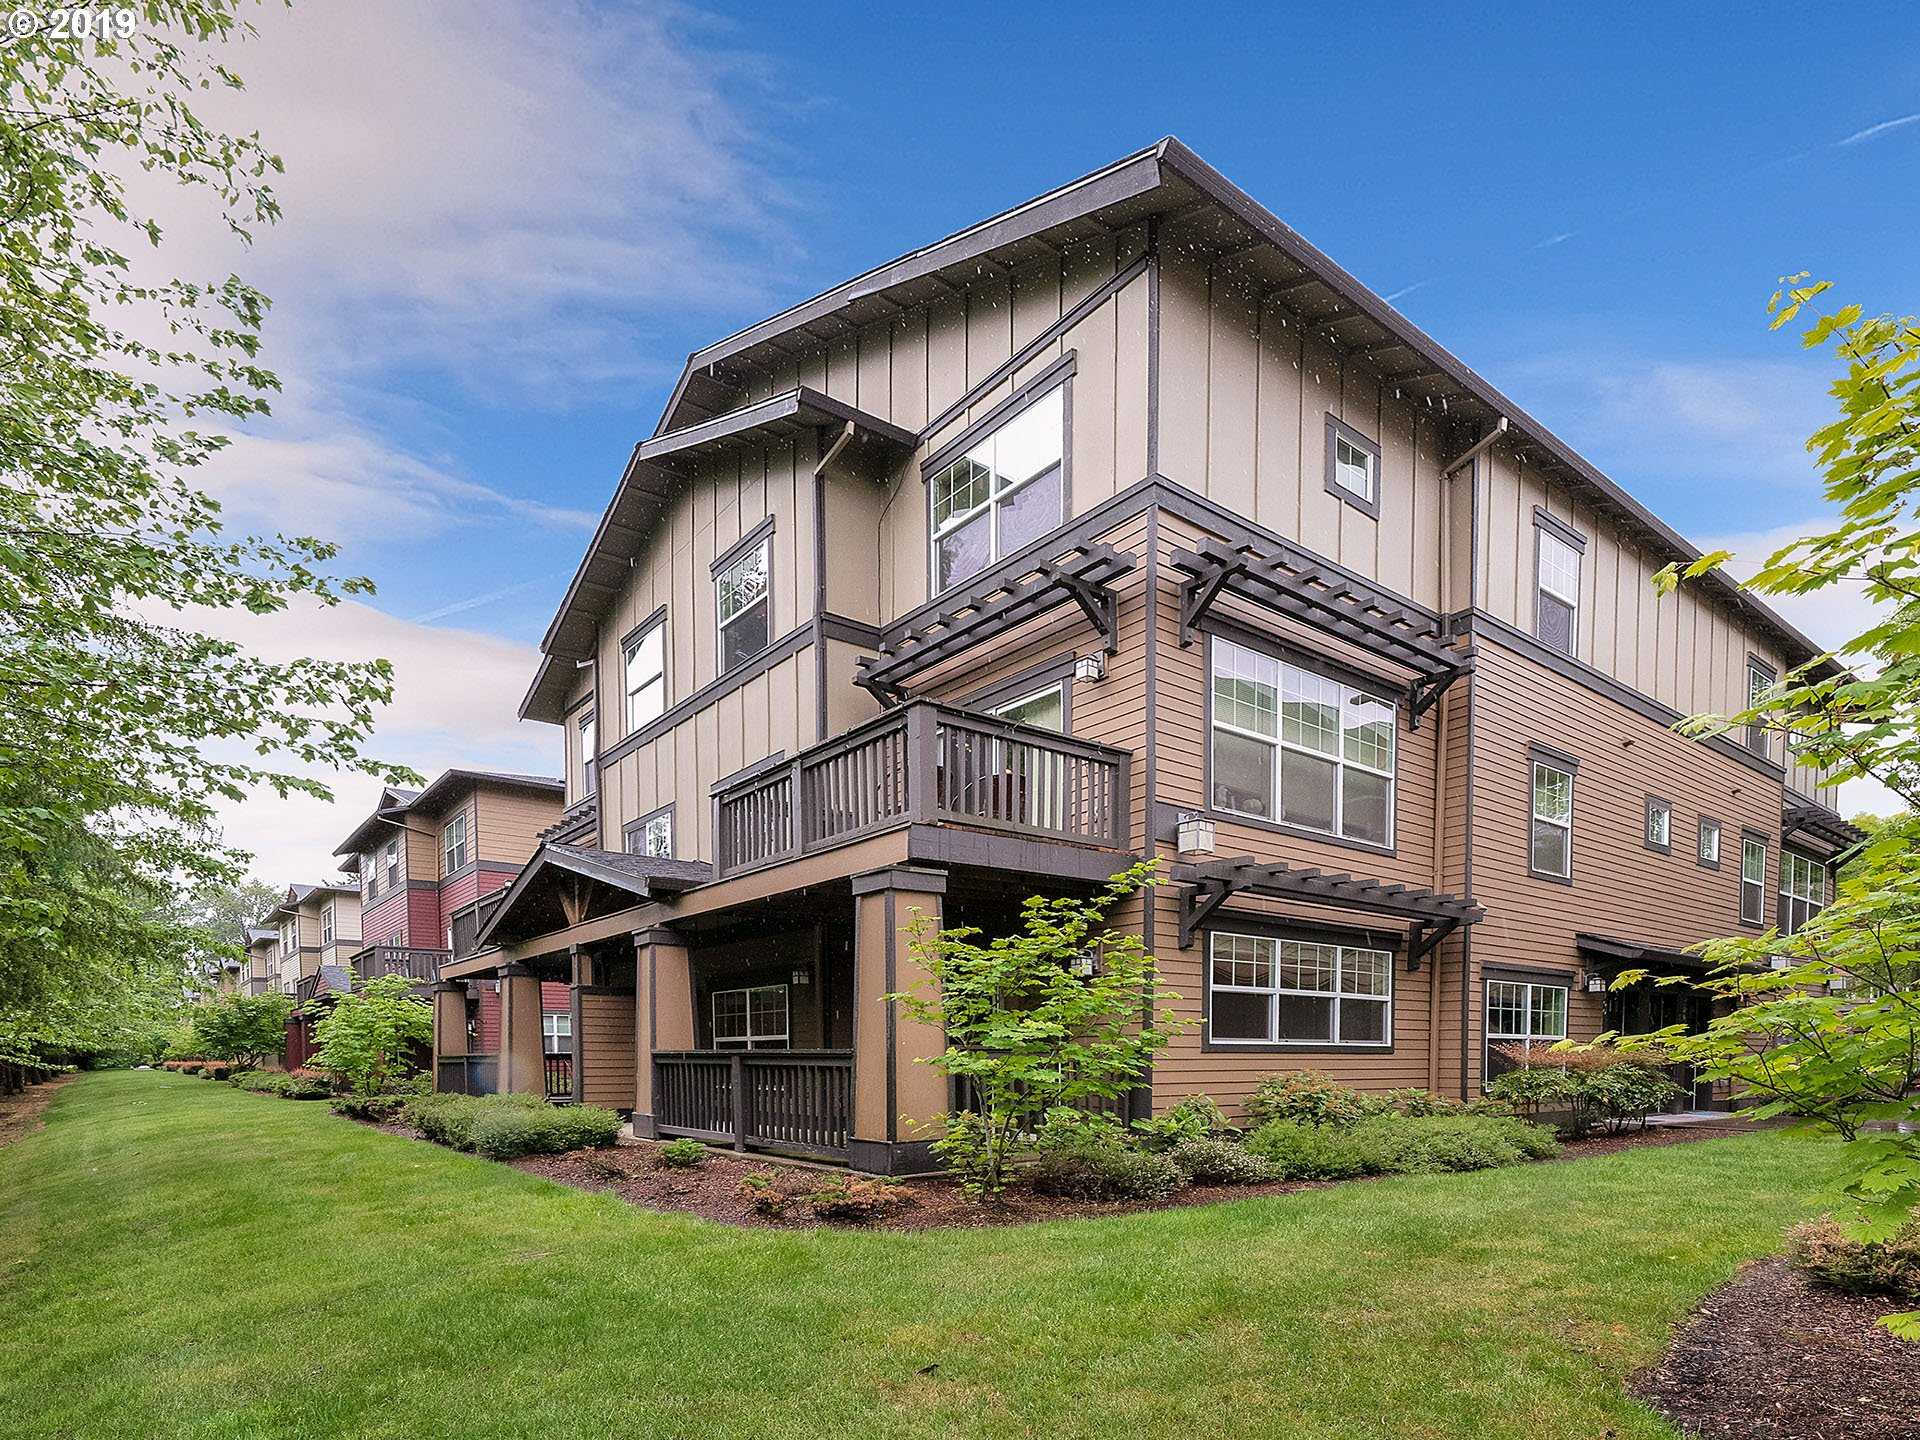 $199,500 - 2Br/1Ba -  for Sale in Woodhaven Crossing Condo, Sherwood